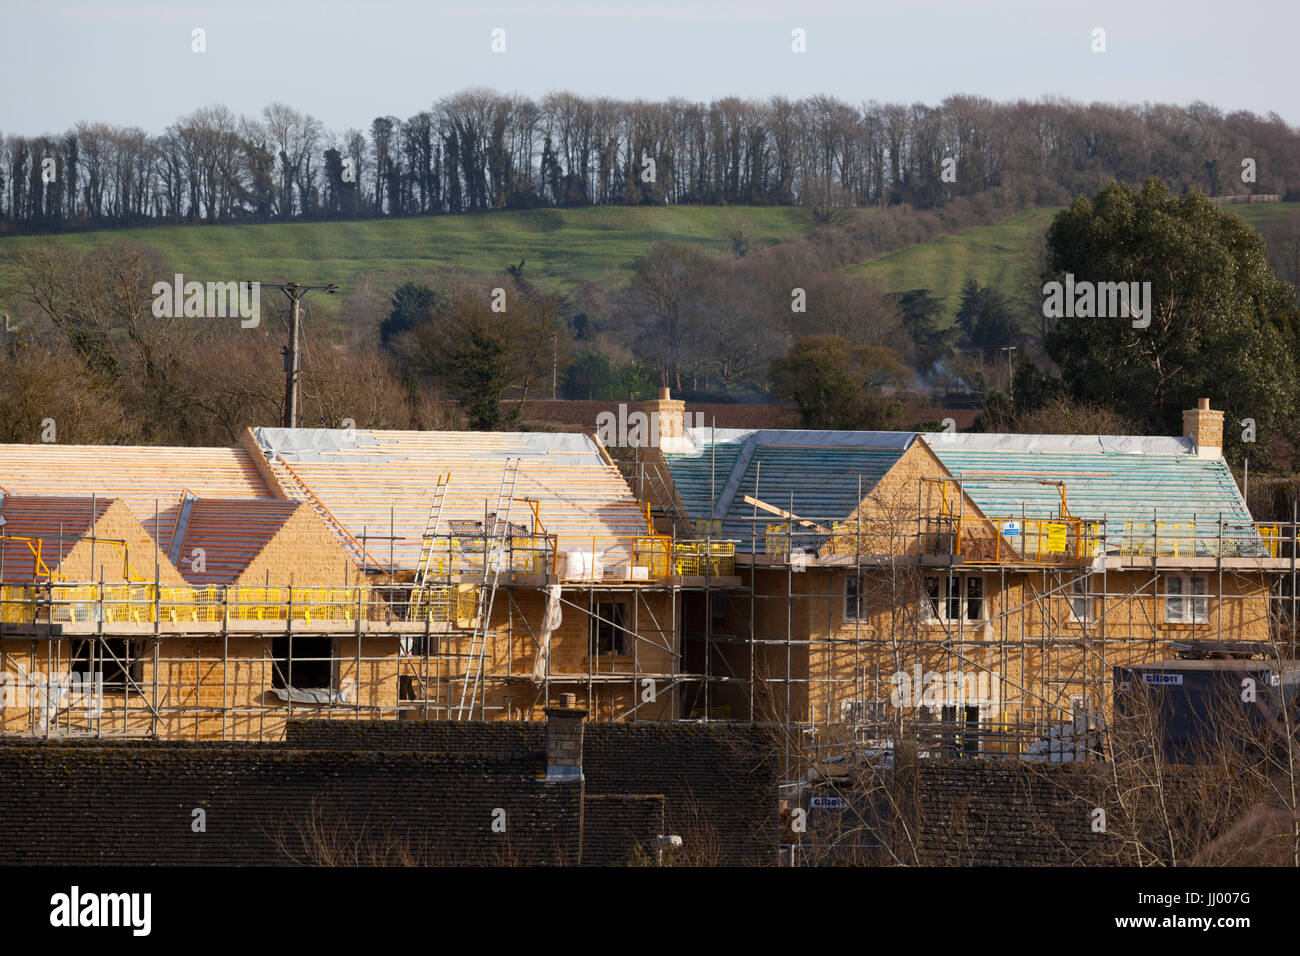 New houses being built in Cotswold countryside, Chipping Campden, Cotswolds, Gloucestershire, England, United Kingdom, - Stock Image